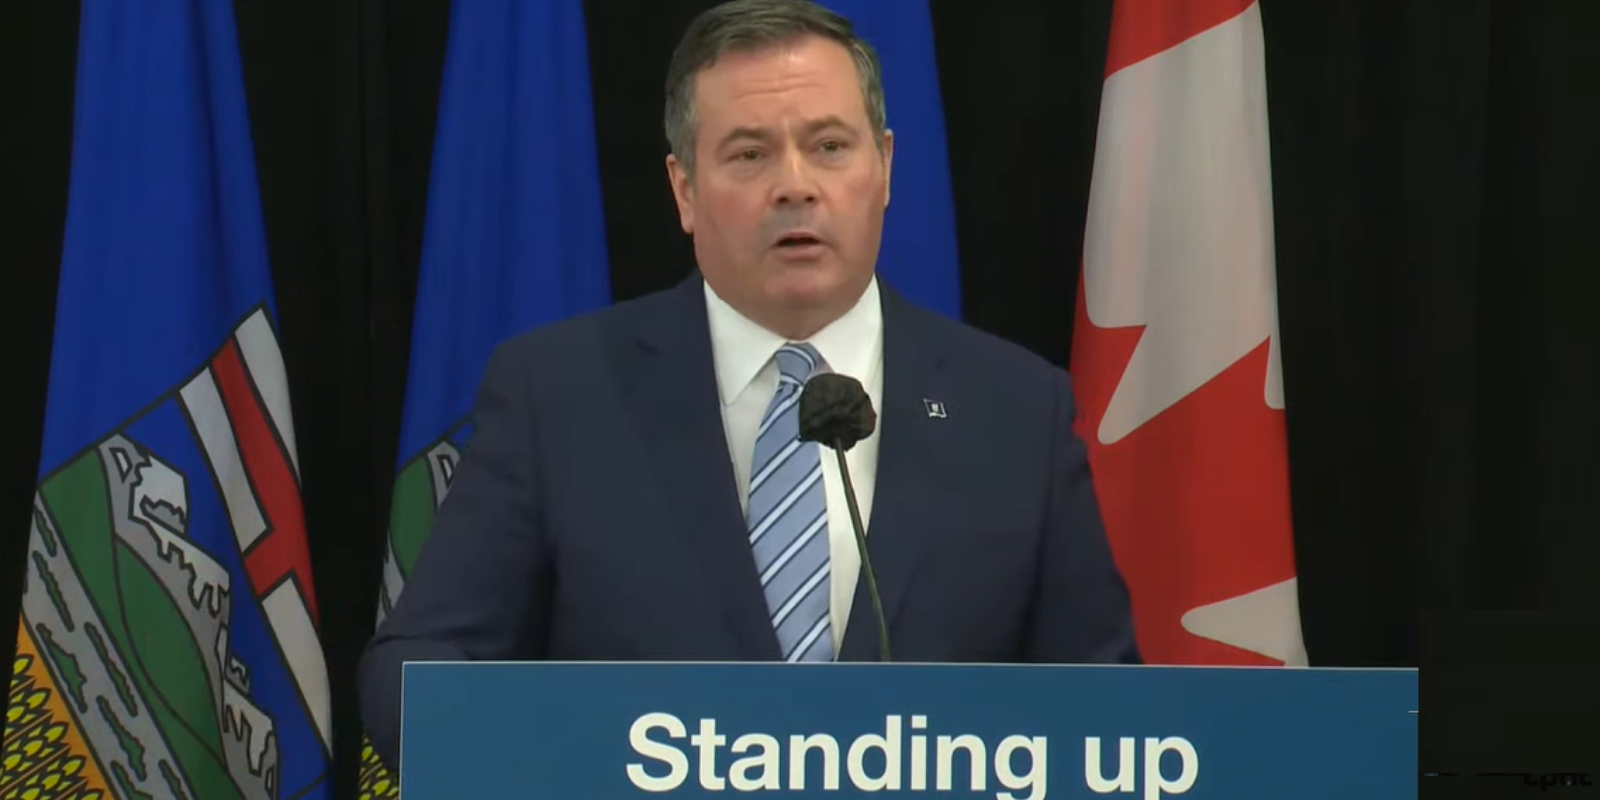 BREAKING: Kenney slams carbon tax ruling, says court 'discovered new federal power that erodes provincial jurisdictions'